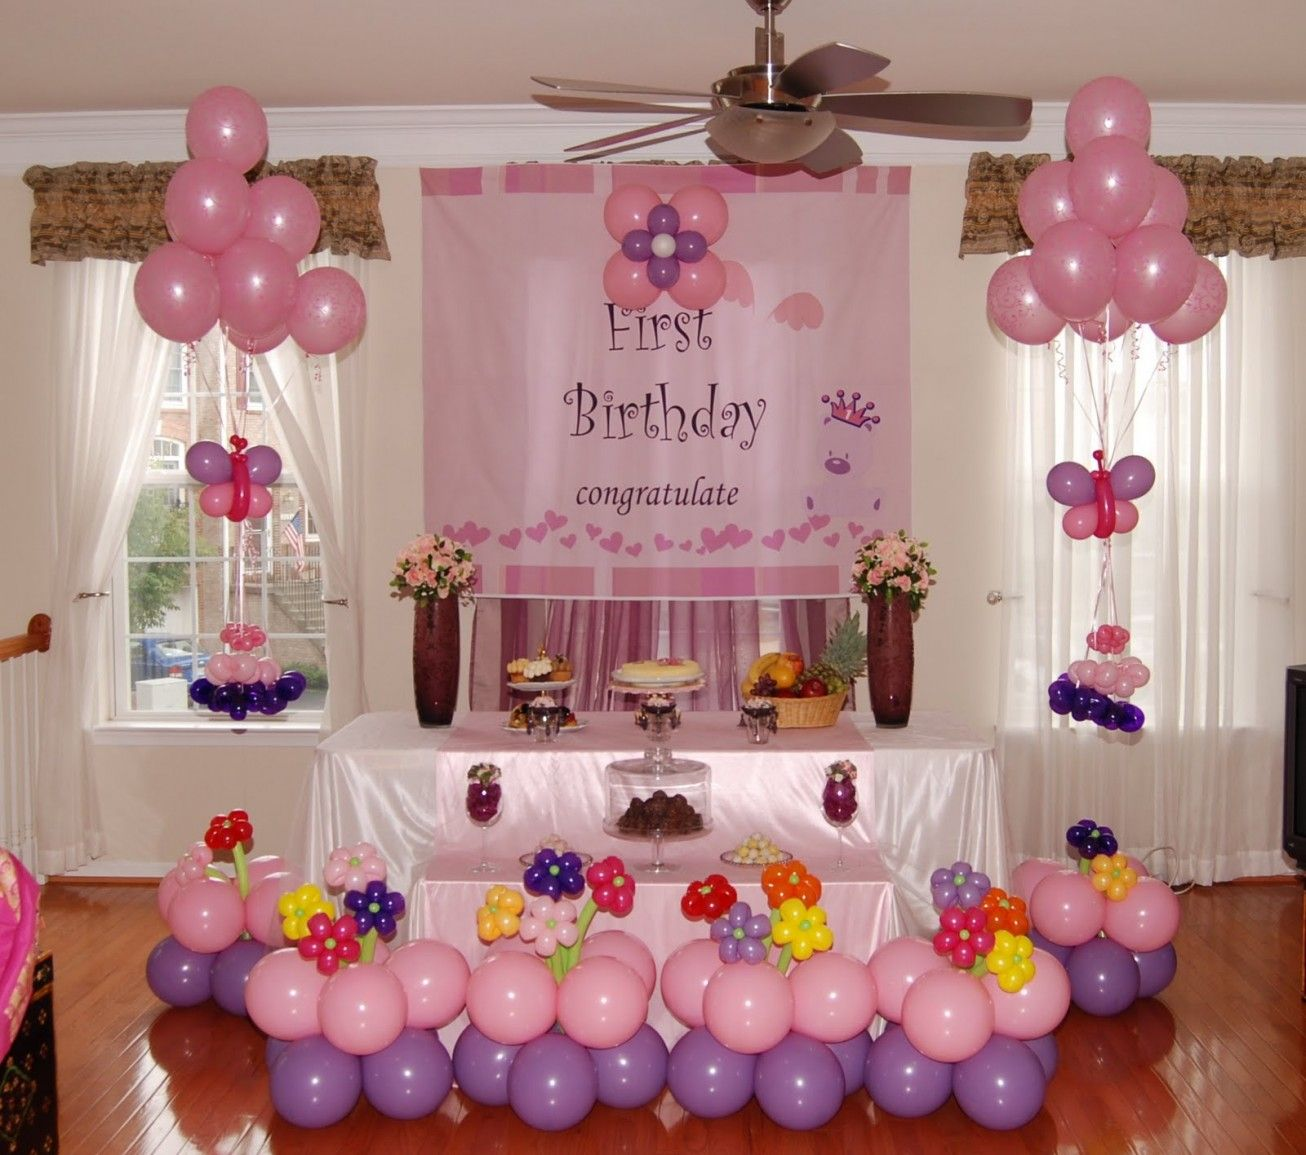 Charming Ideas For Birthday Decorations At Home Part - 12: Home Design: Birthday Decoration Ideas At Home With Balloons House  Wallpaper Decoration Of Birthday Cards Decoration Of Birthday Party Ideas,  ...